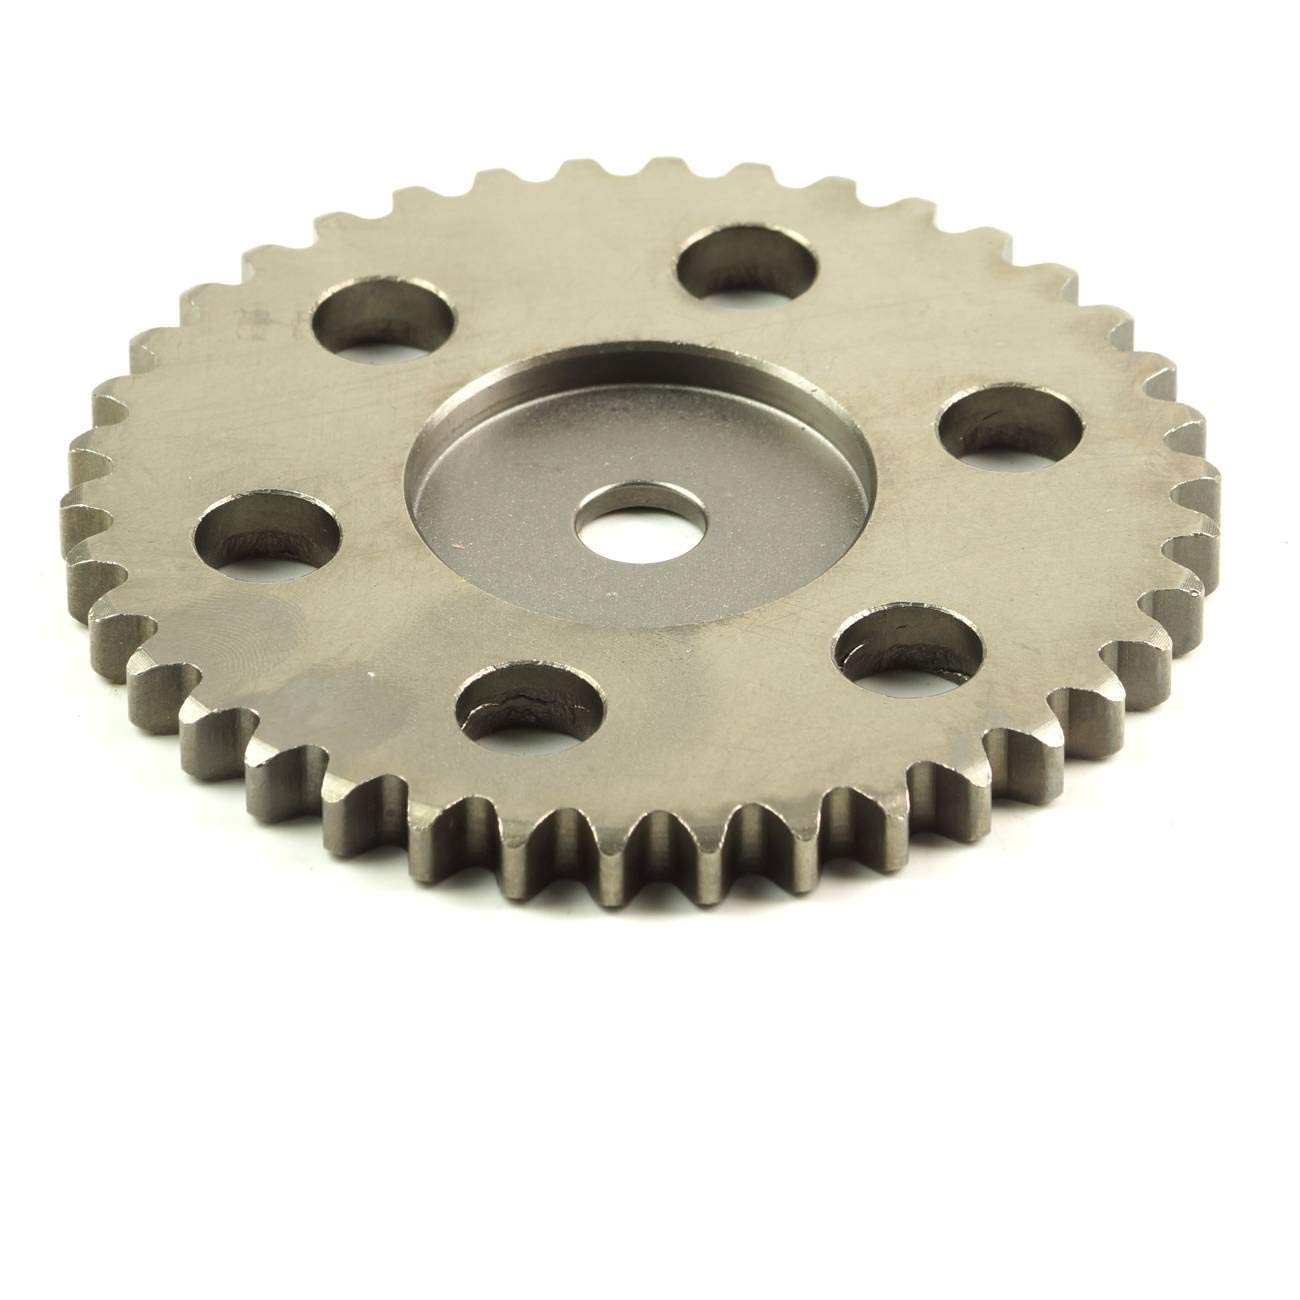 Mgpro New 1pc Camshaft Sprocket Assembly For Ford 05-13 Escape / 05-13 Focus / 10-13 Fusion / 01-11 Ranger / 10-13 Transit Connect & Lincoln 10-13 MKZ ...